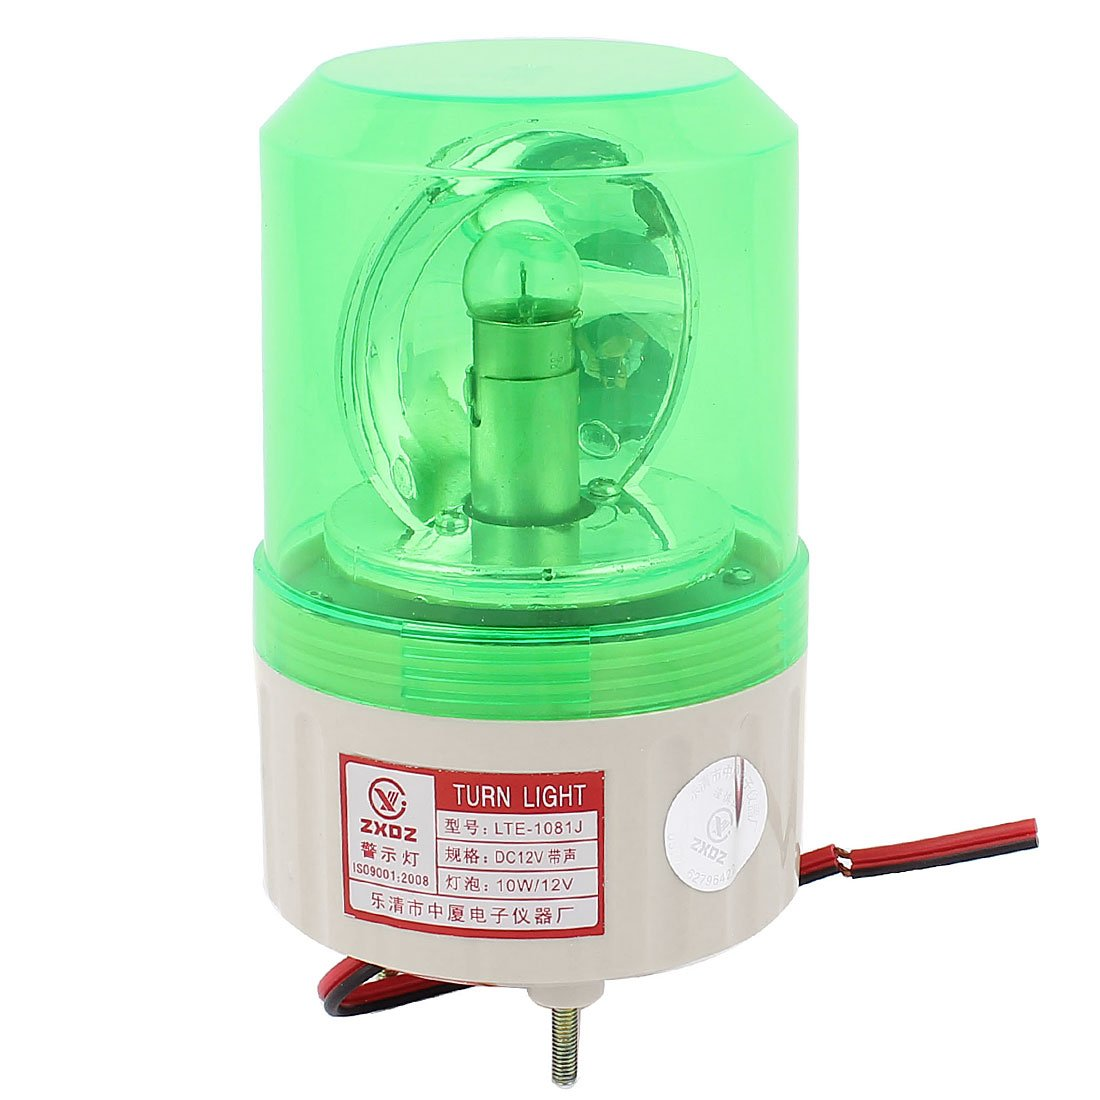 uxcell DC 12V Buzzer Sound Rotating Industrial Signal Warning Lamp Green